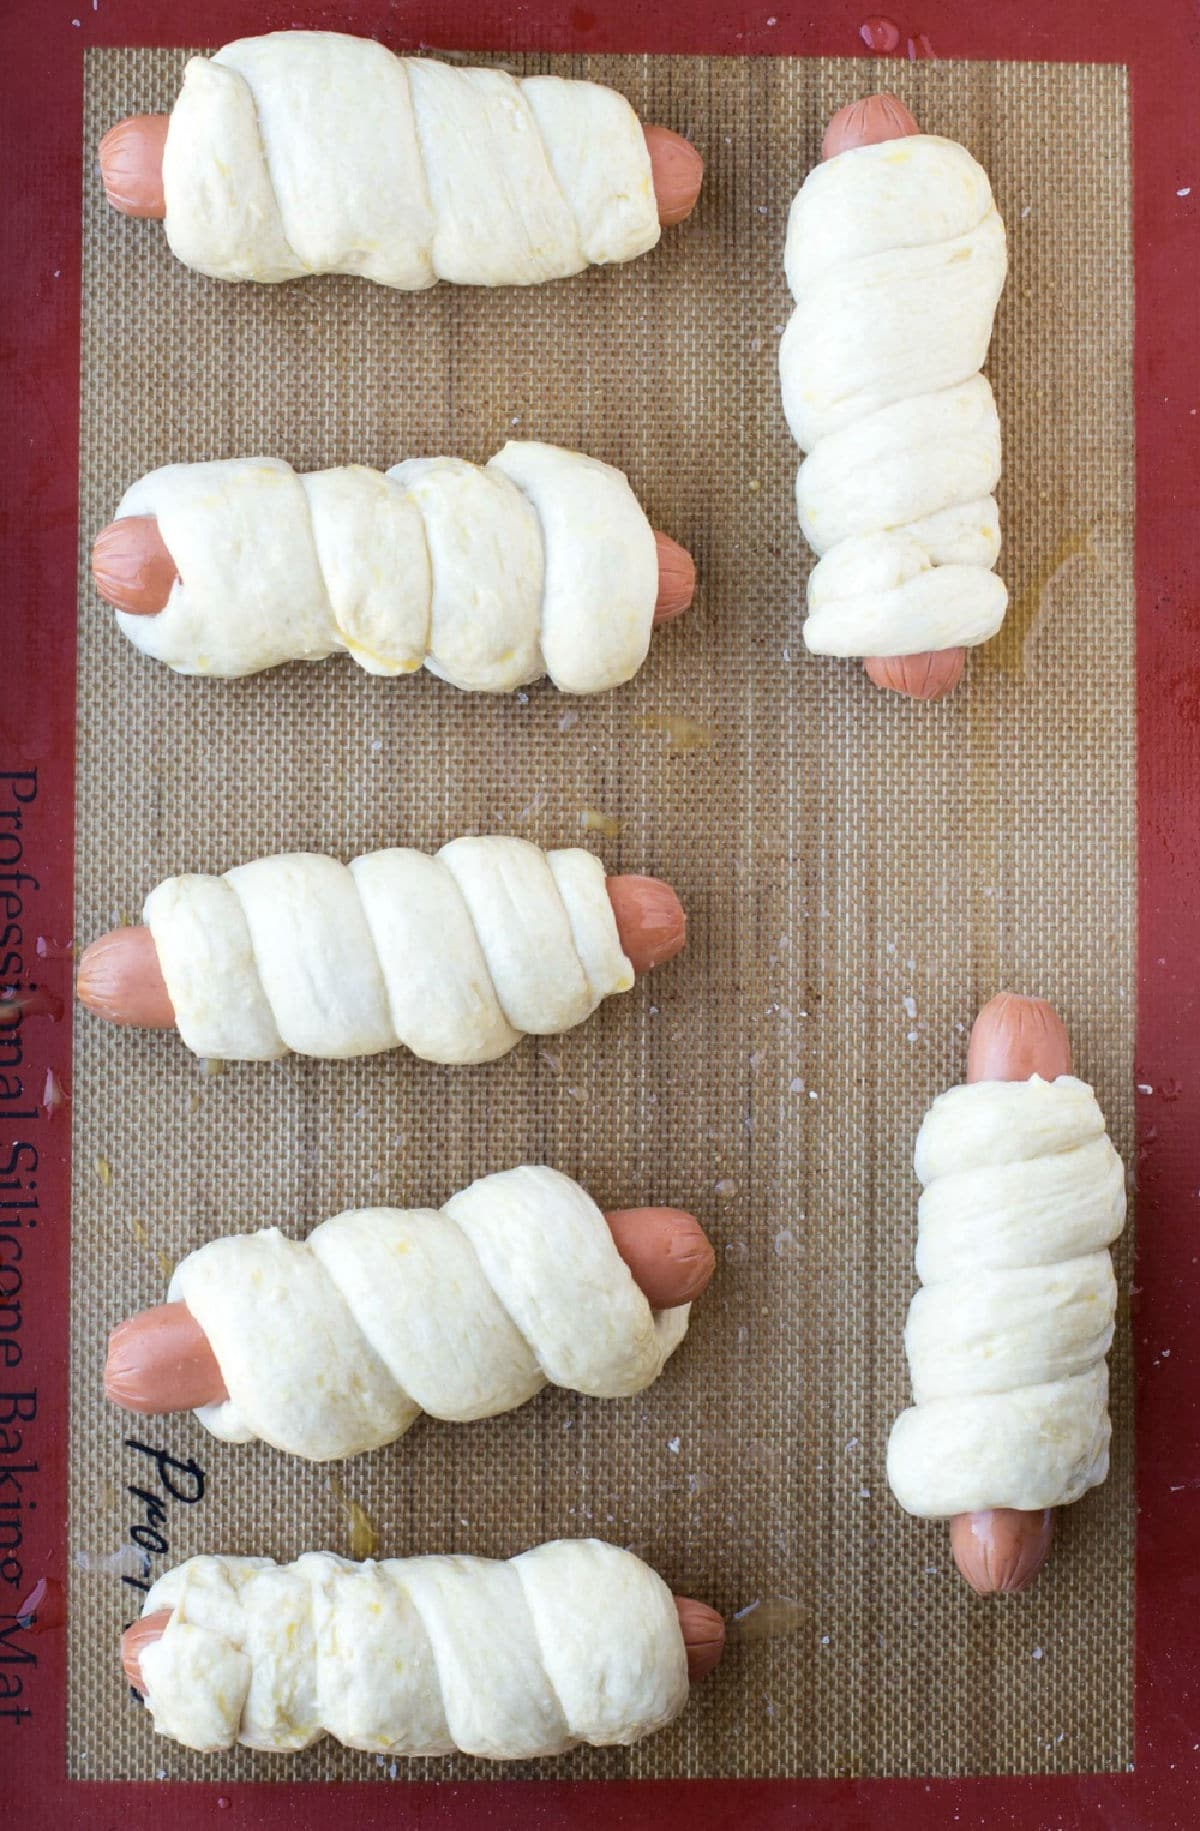 Unbaked pretzel dough wrapped around hot dogs.